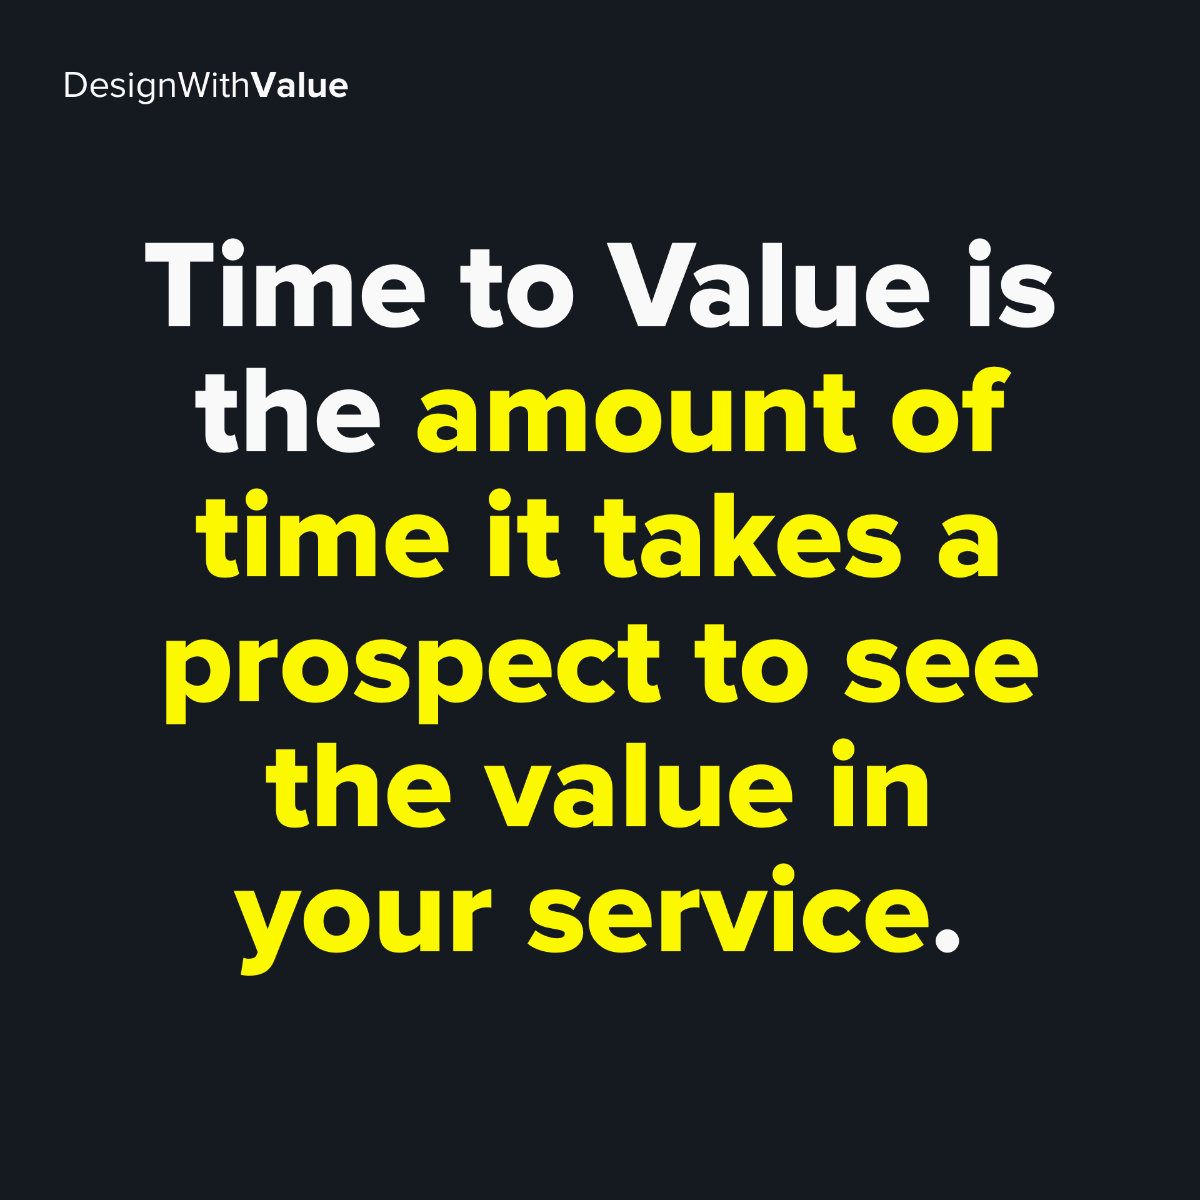 Time to value is the amount of time it takes a prospect to see the value in your service